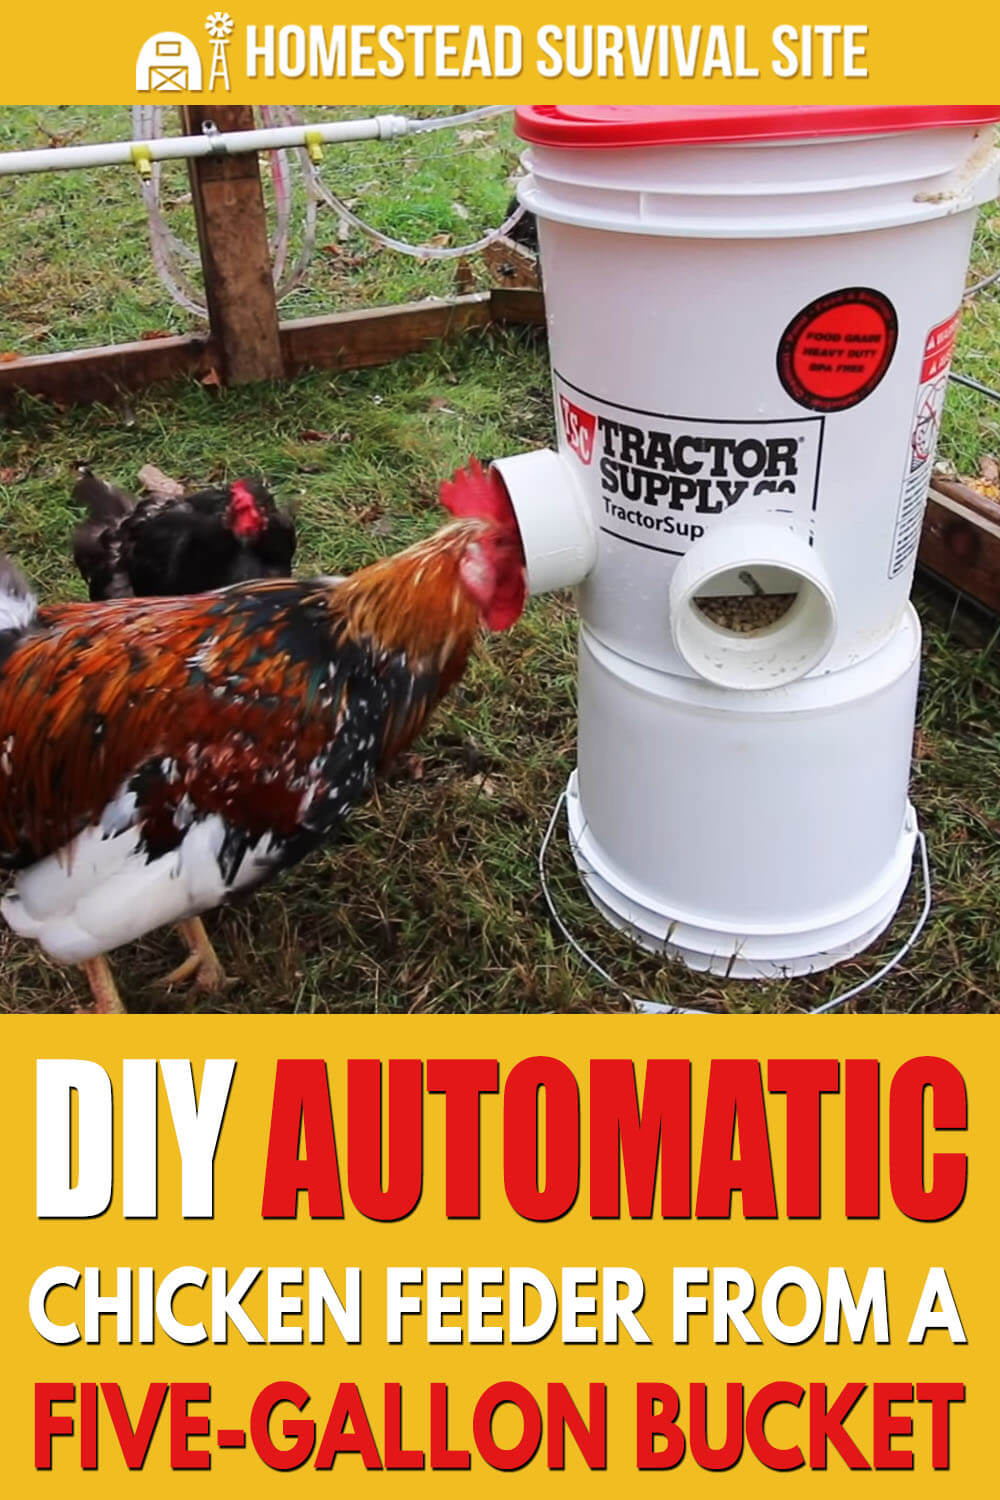 DIY Automatic Chicken Feeder from Five-Gallon Bucket